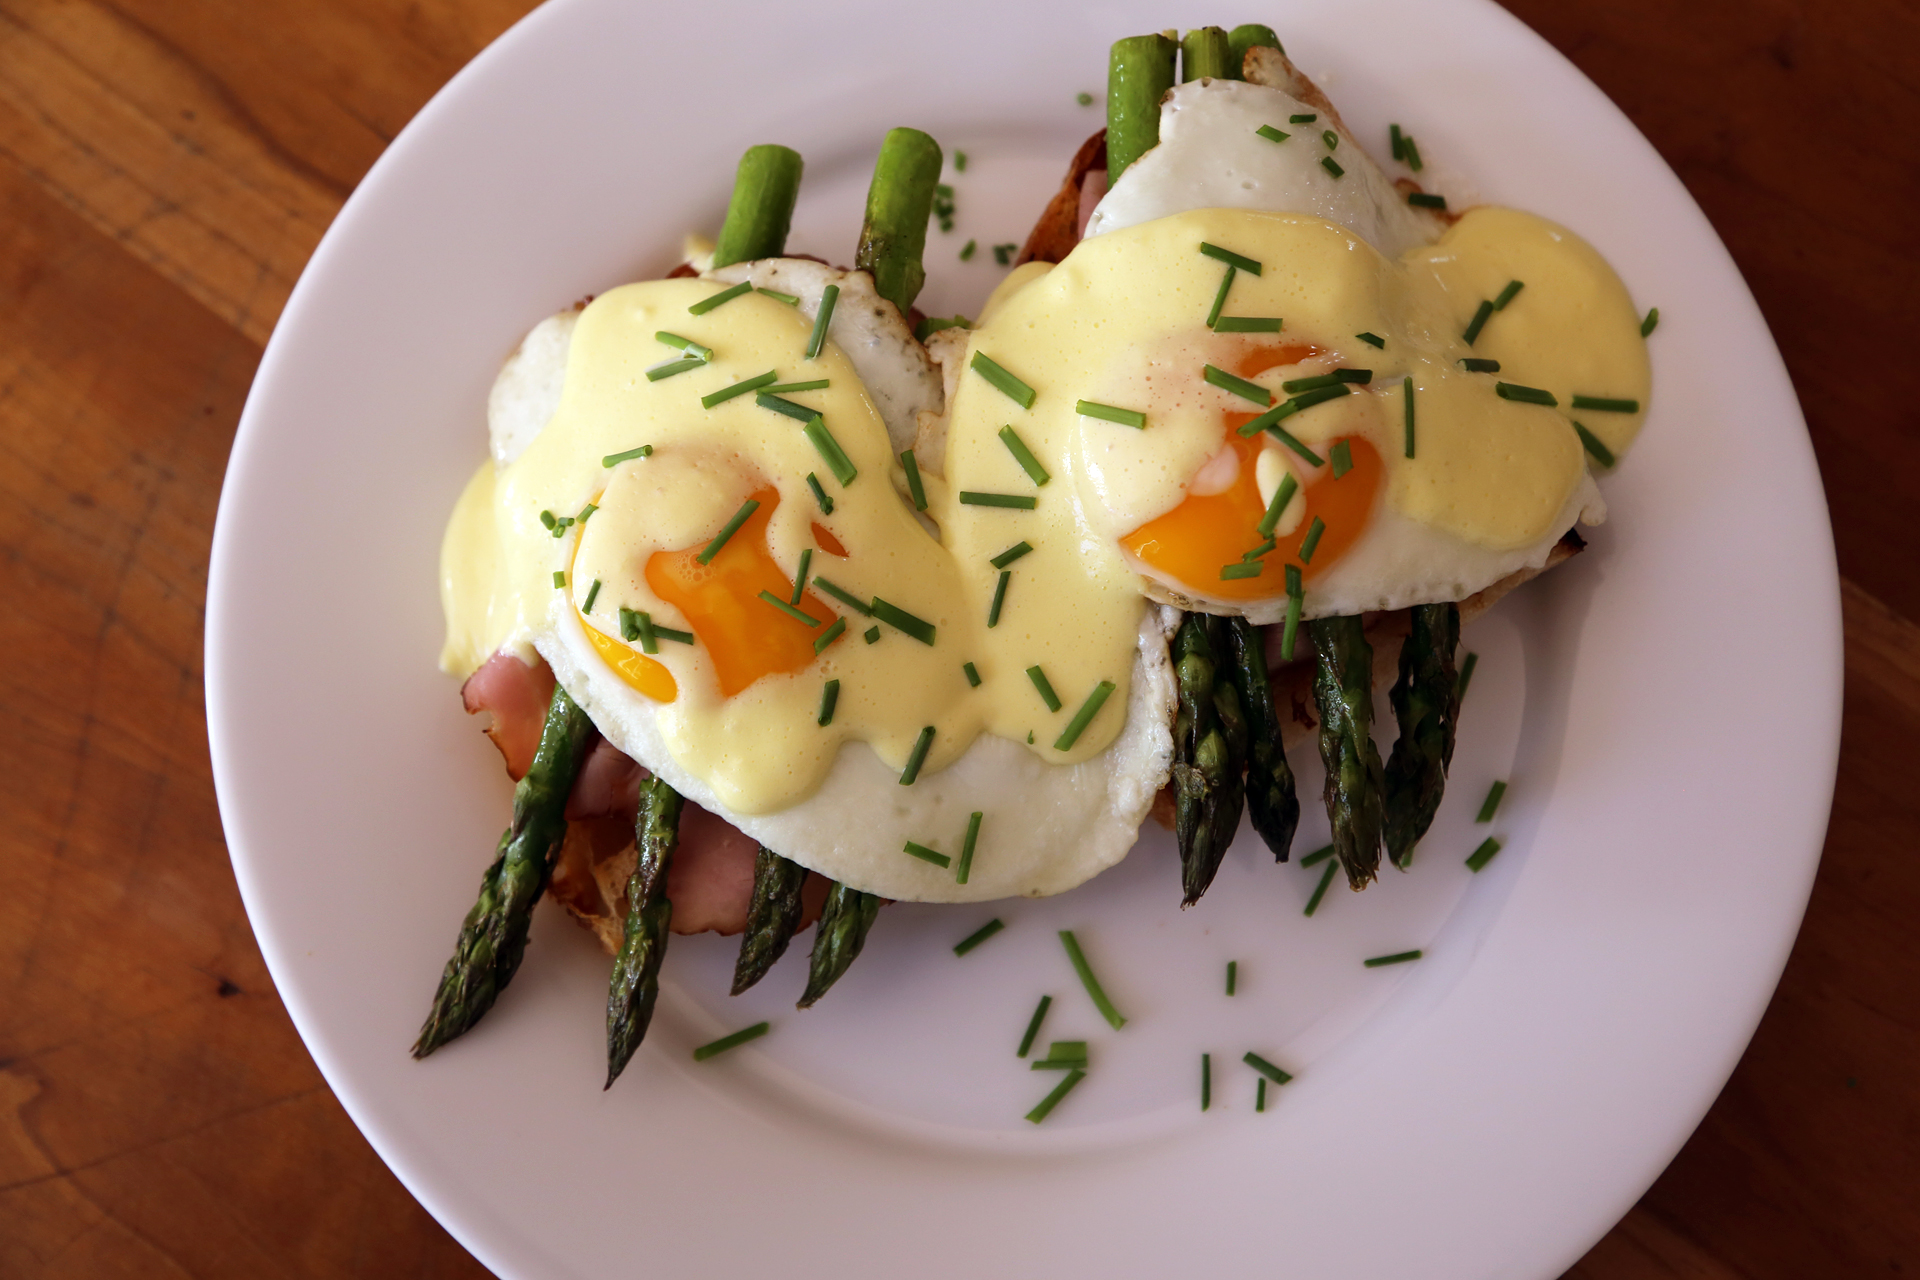 Springtime Eggs Benedict with Asparagus, Ham, and Quick Lemony Hollandaise Sauce